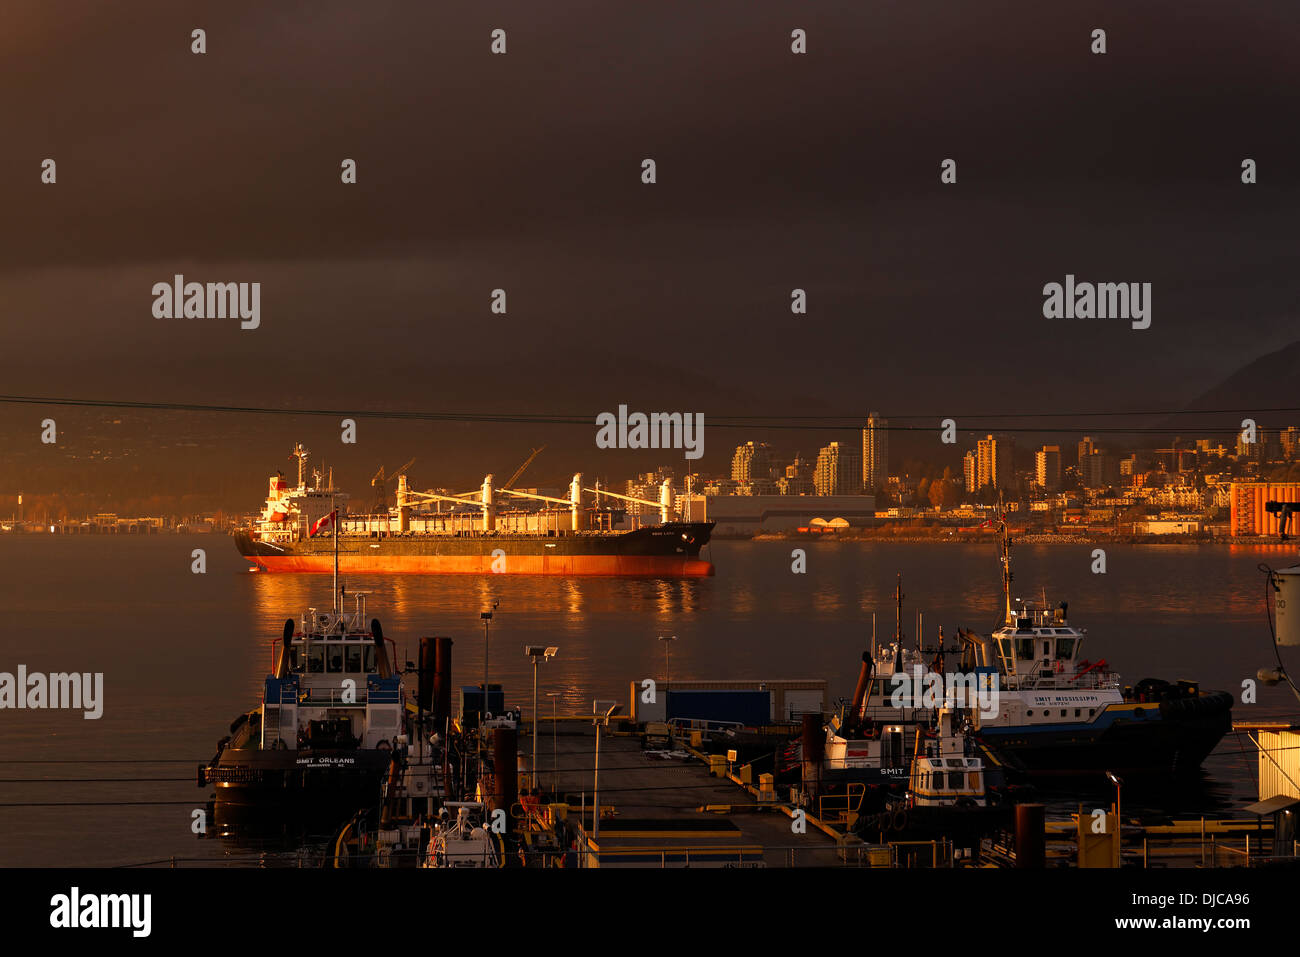 Bulk Carrier, Voge Lena in Vancouver Harbour, Vancouver, British Columbia. Canada - Stock Image